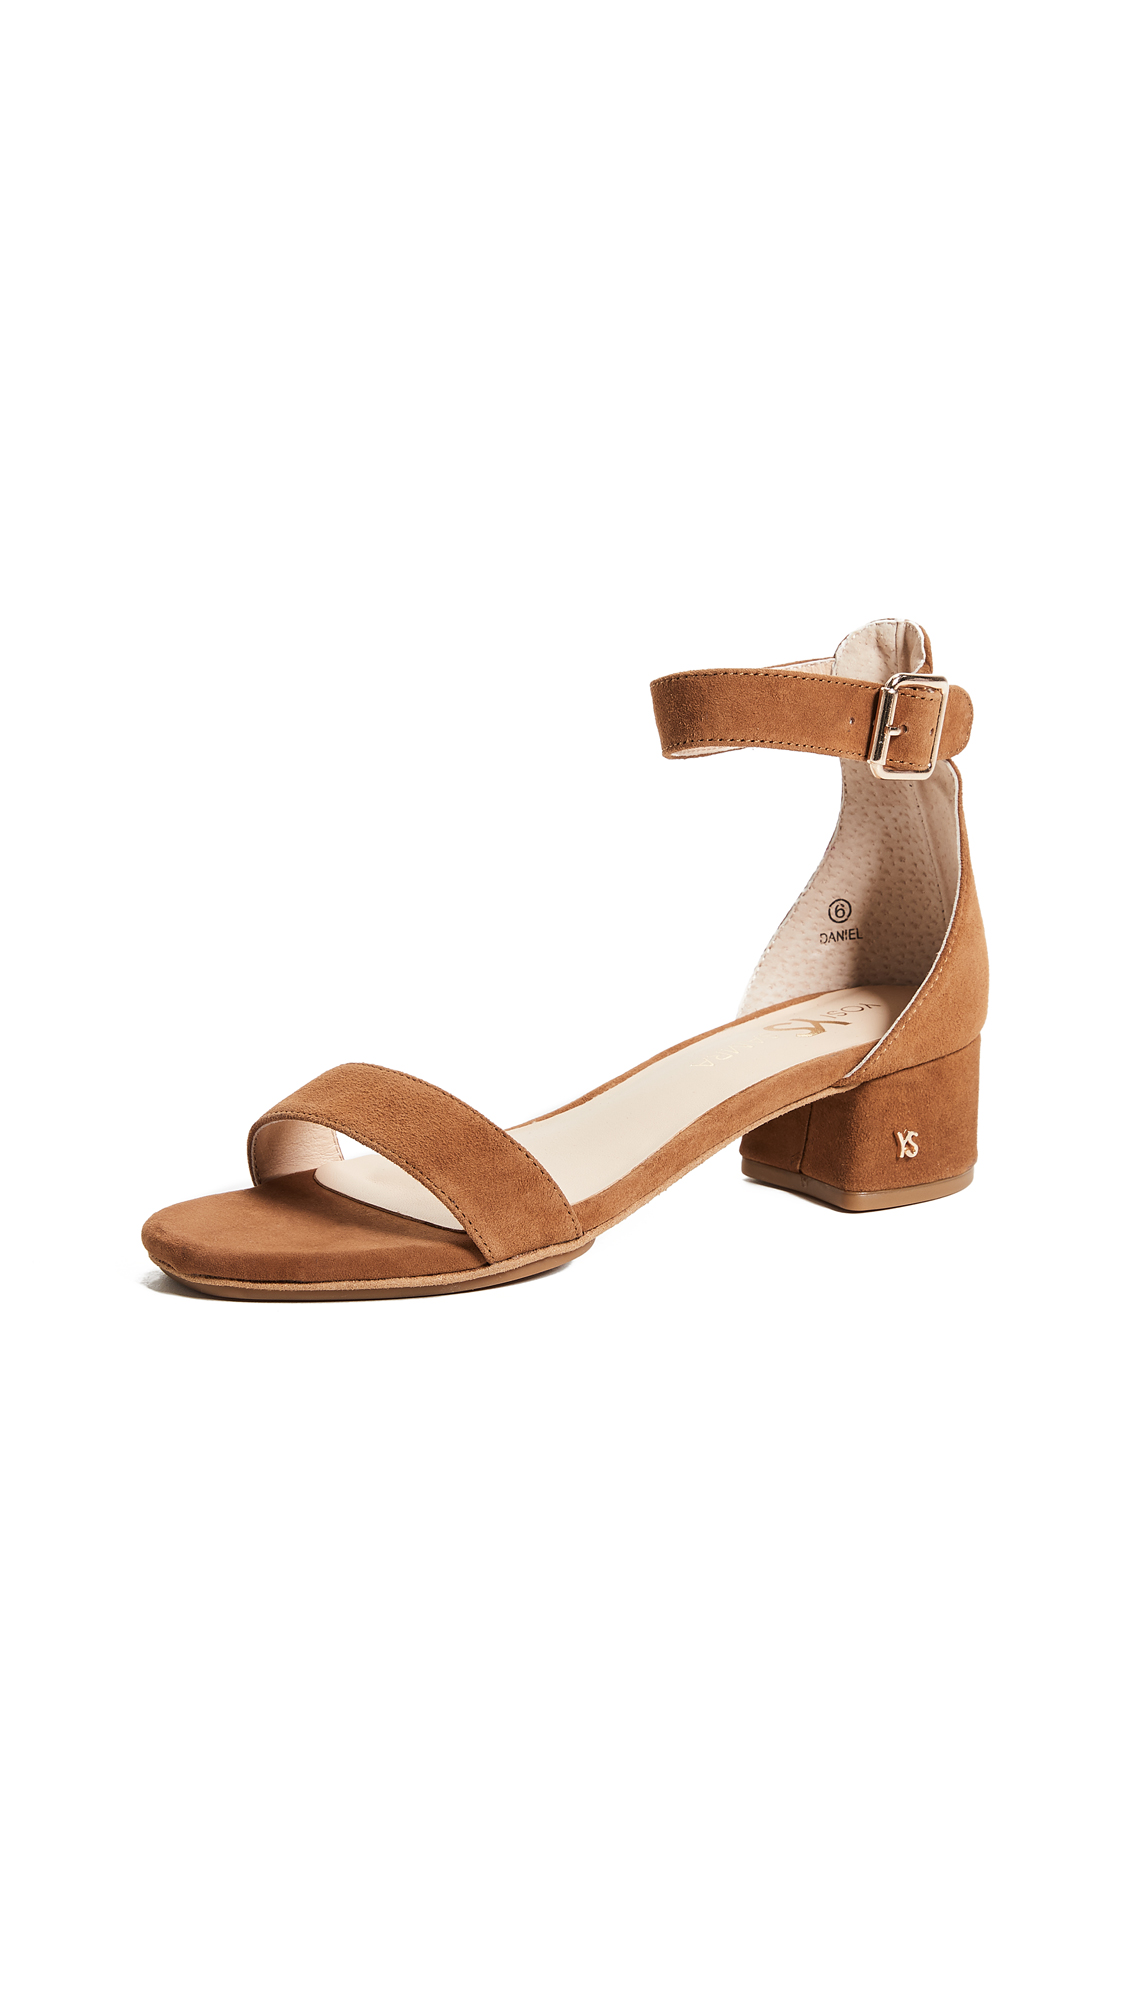 Yosi Samra Daniel Sandals In Bone Brown